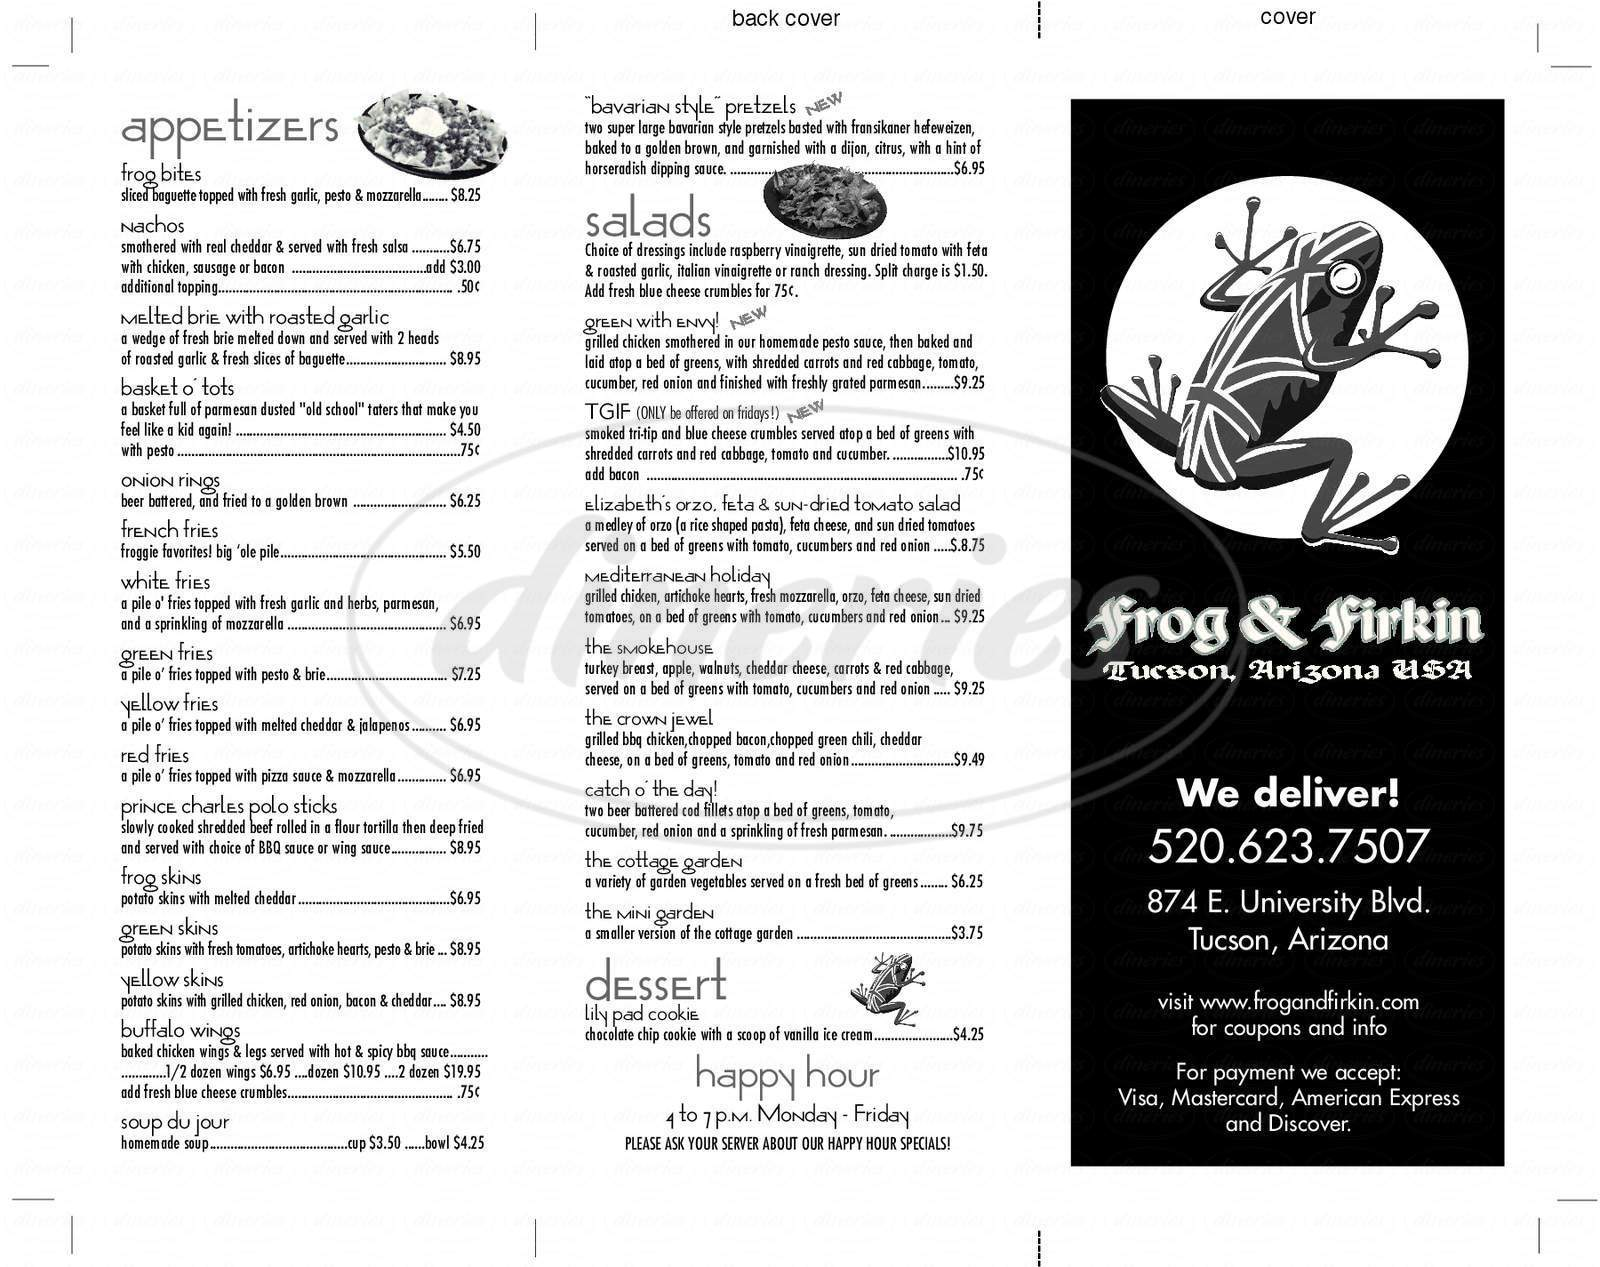 menu for Frog & Firkin